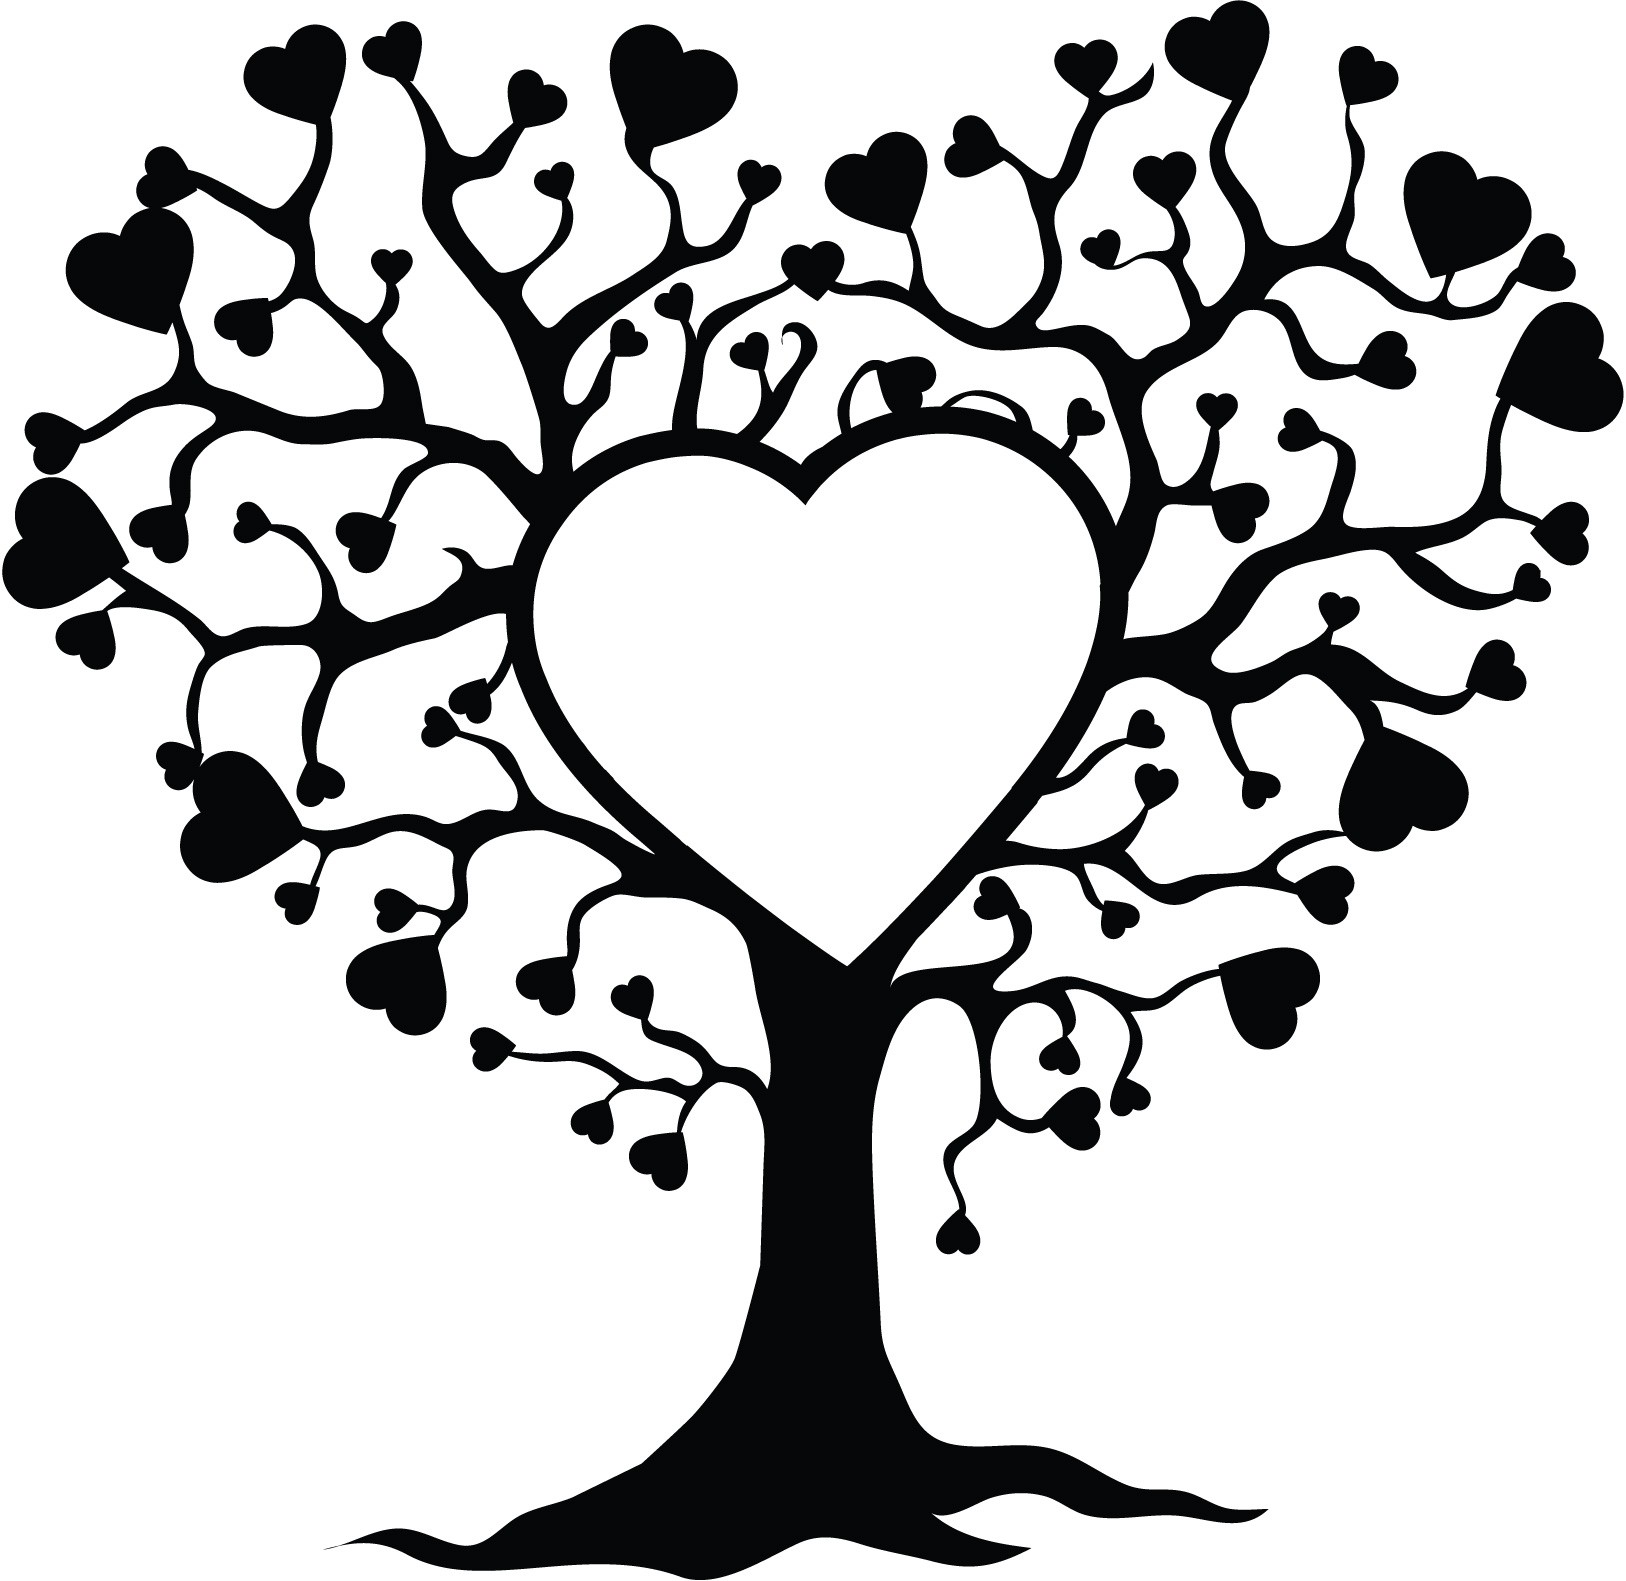 Tree of life clipart black and white » Clipart Station.